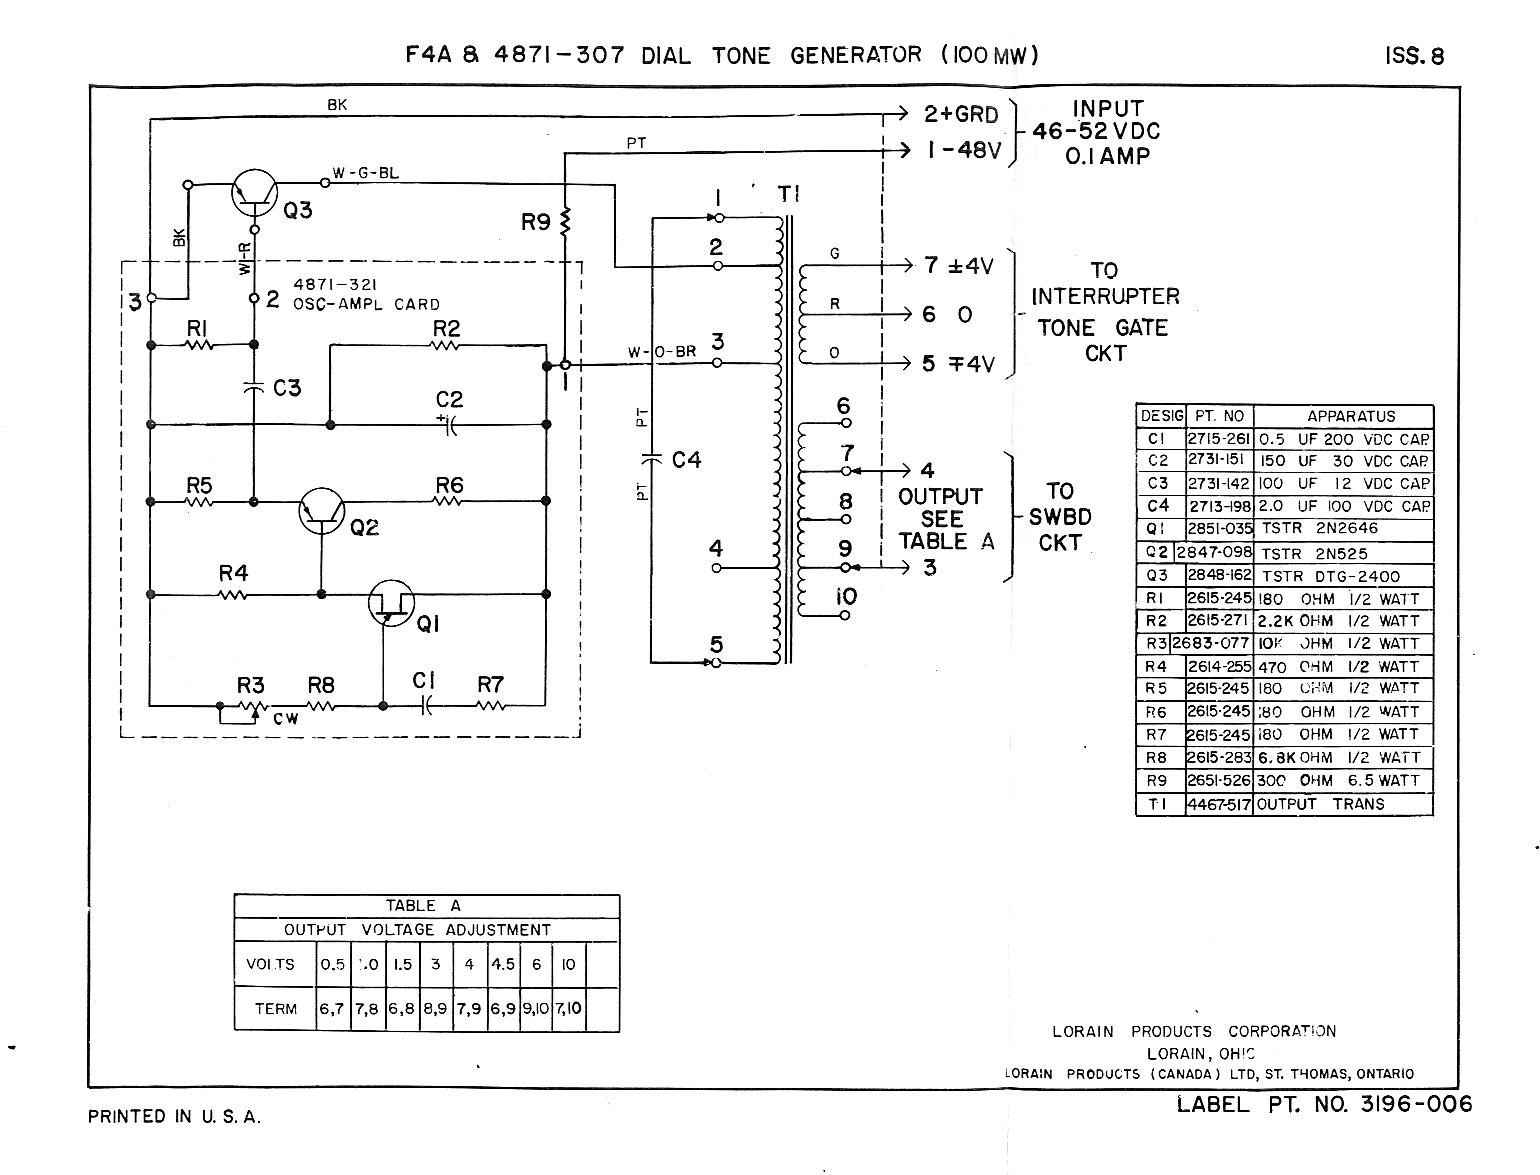 lorain_f4a telephone technical references Residential Telephone Wiring Diagram at fashall.co